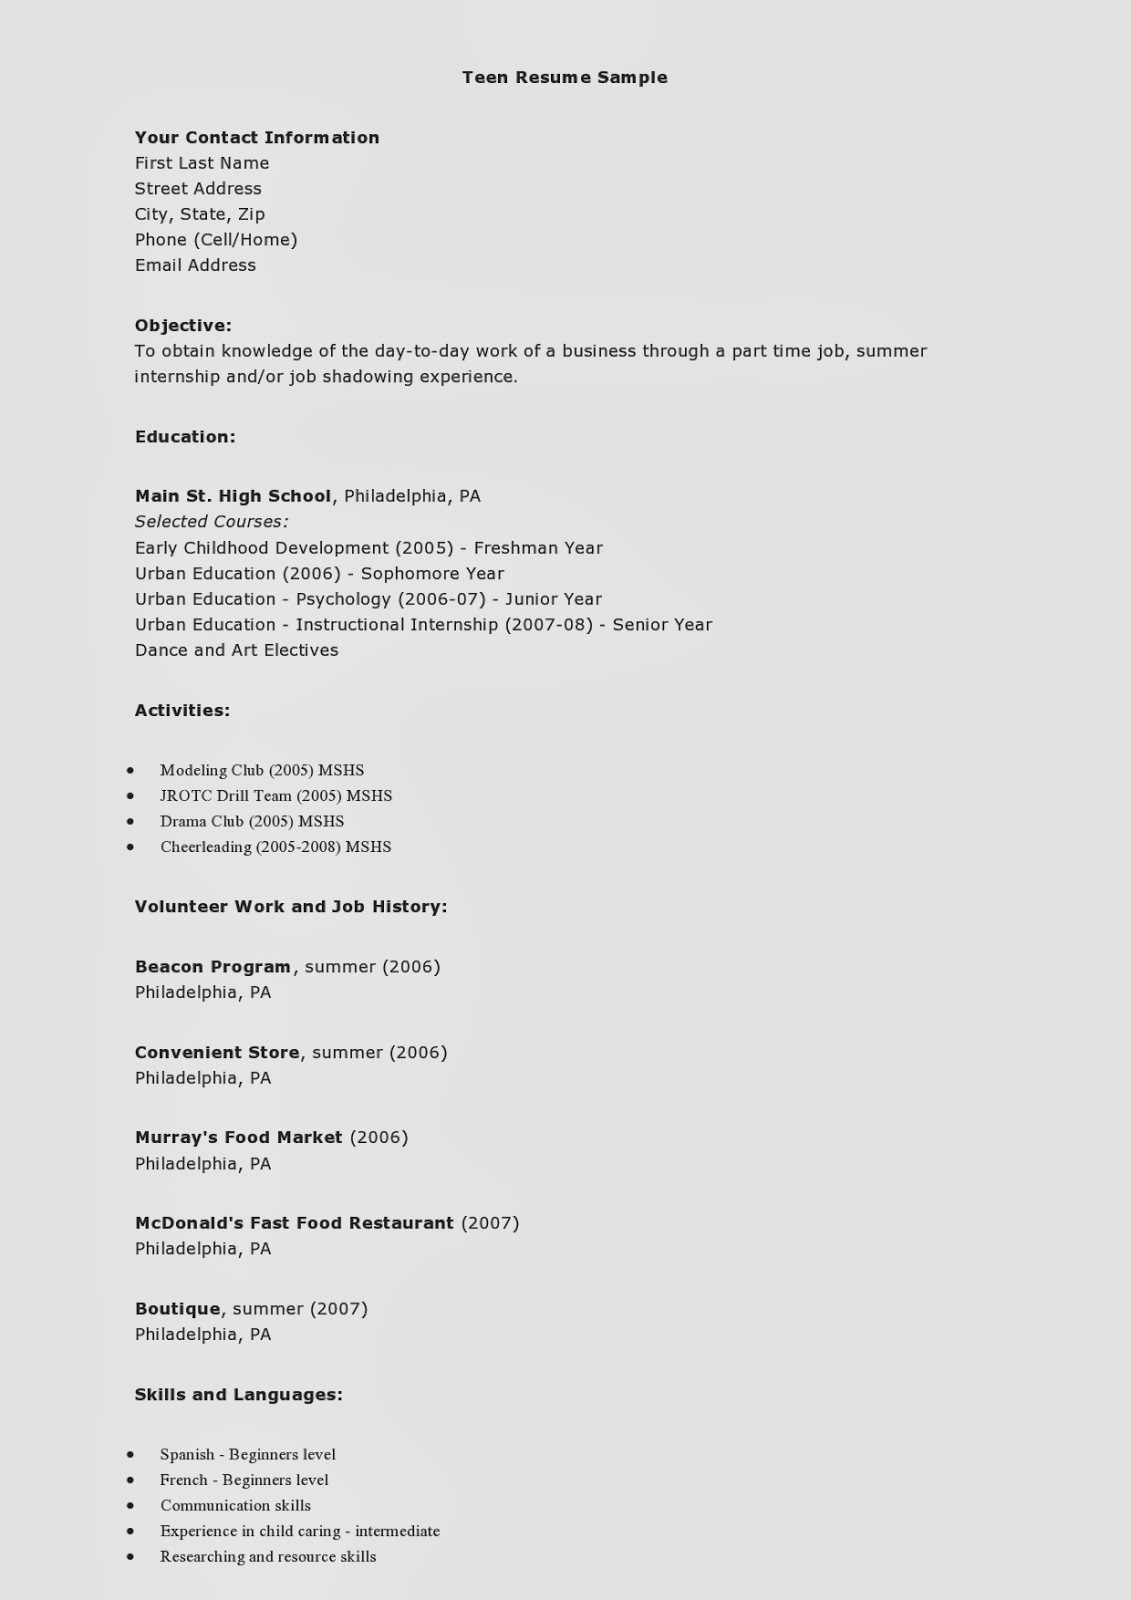 Teenage Resume Builder Regularmidwesternerscom Teenage Resume Builder ...